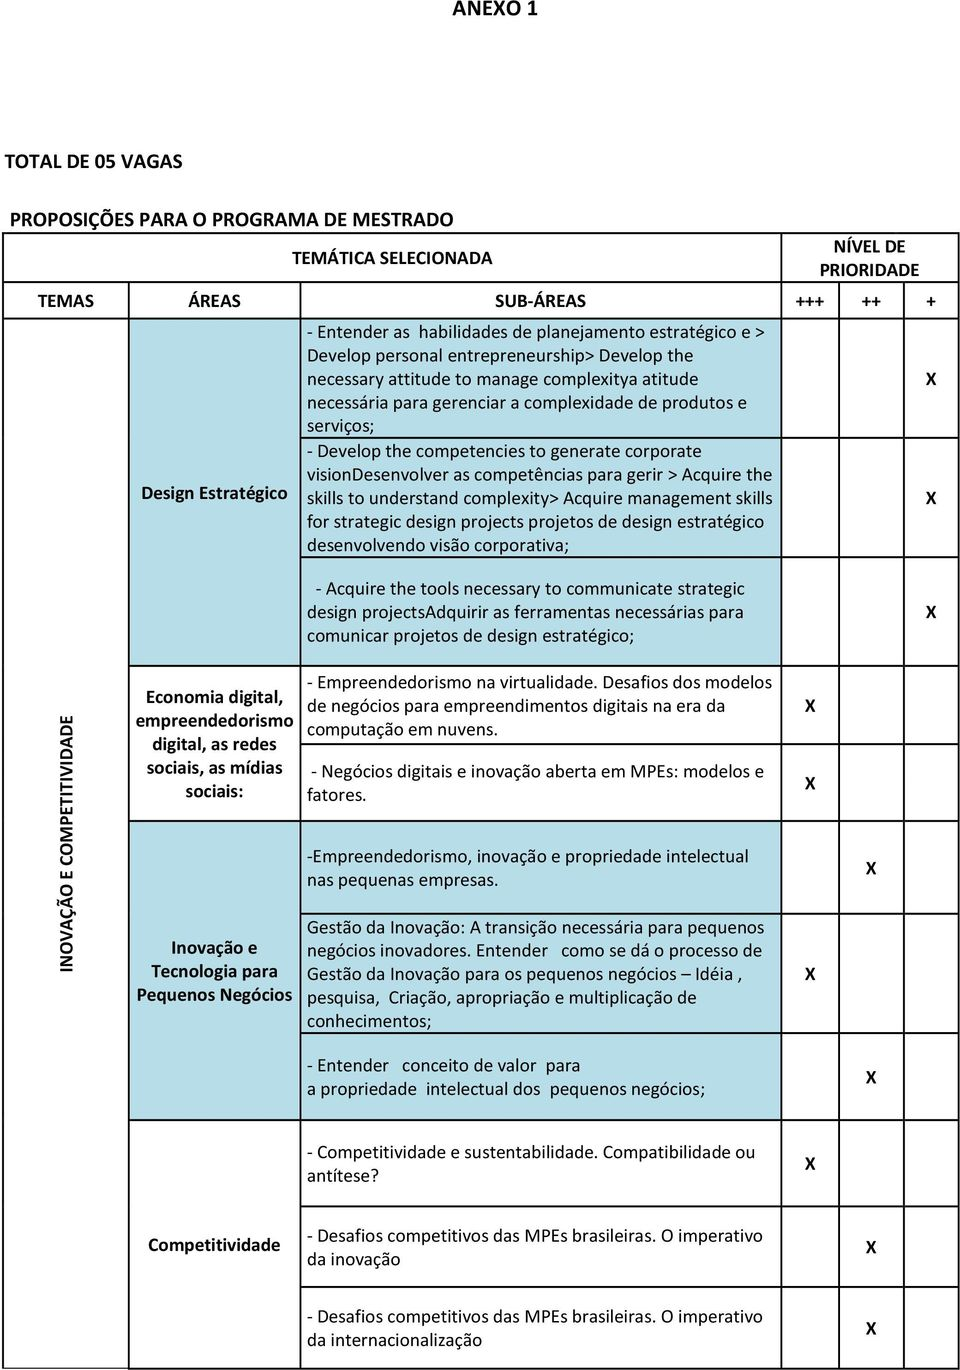 competencies to generate corporate visiondesenvolver as competências para gerir > Acquire the skills to understand complexity> Acquire management skills for strategic design projects projetos de